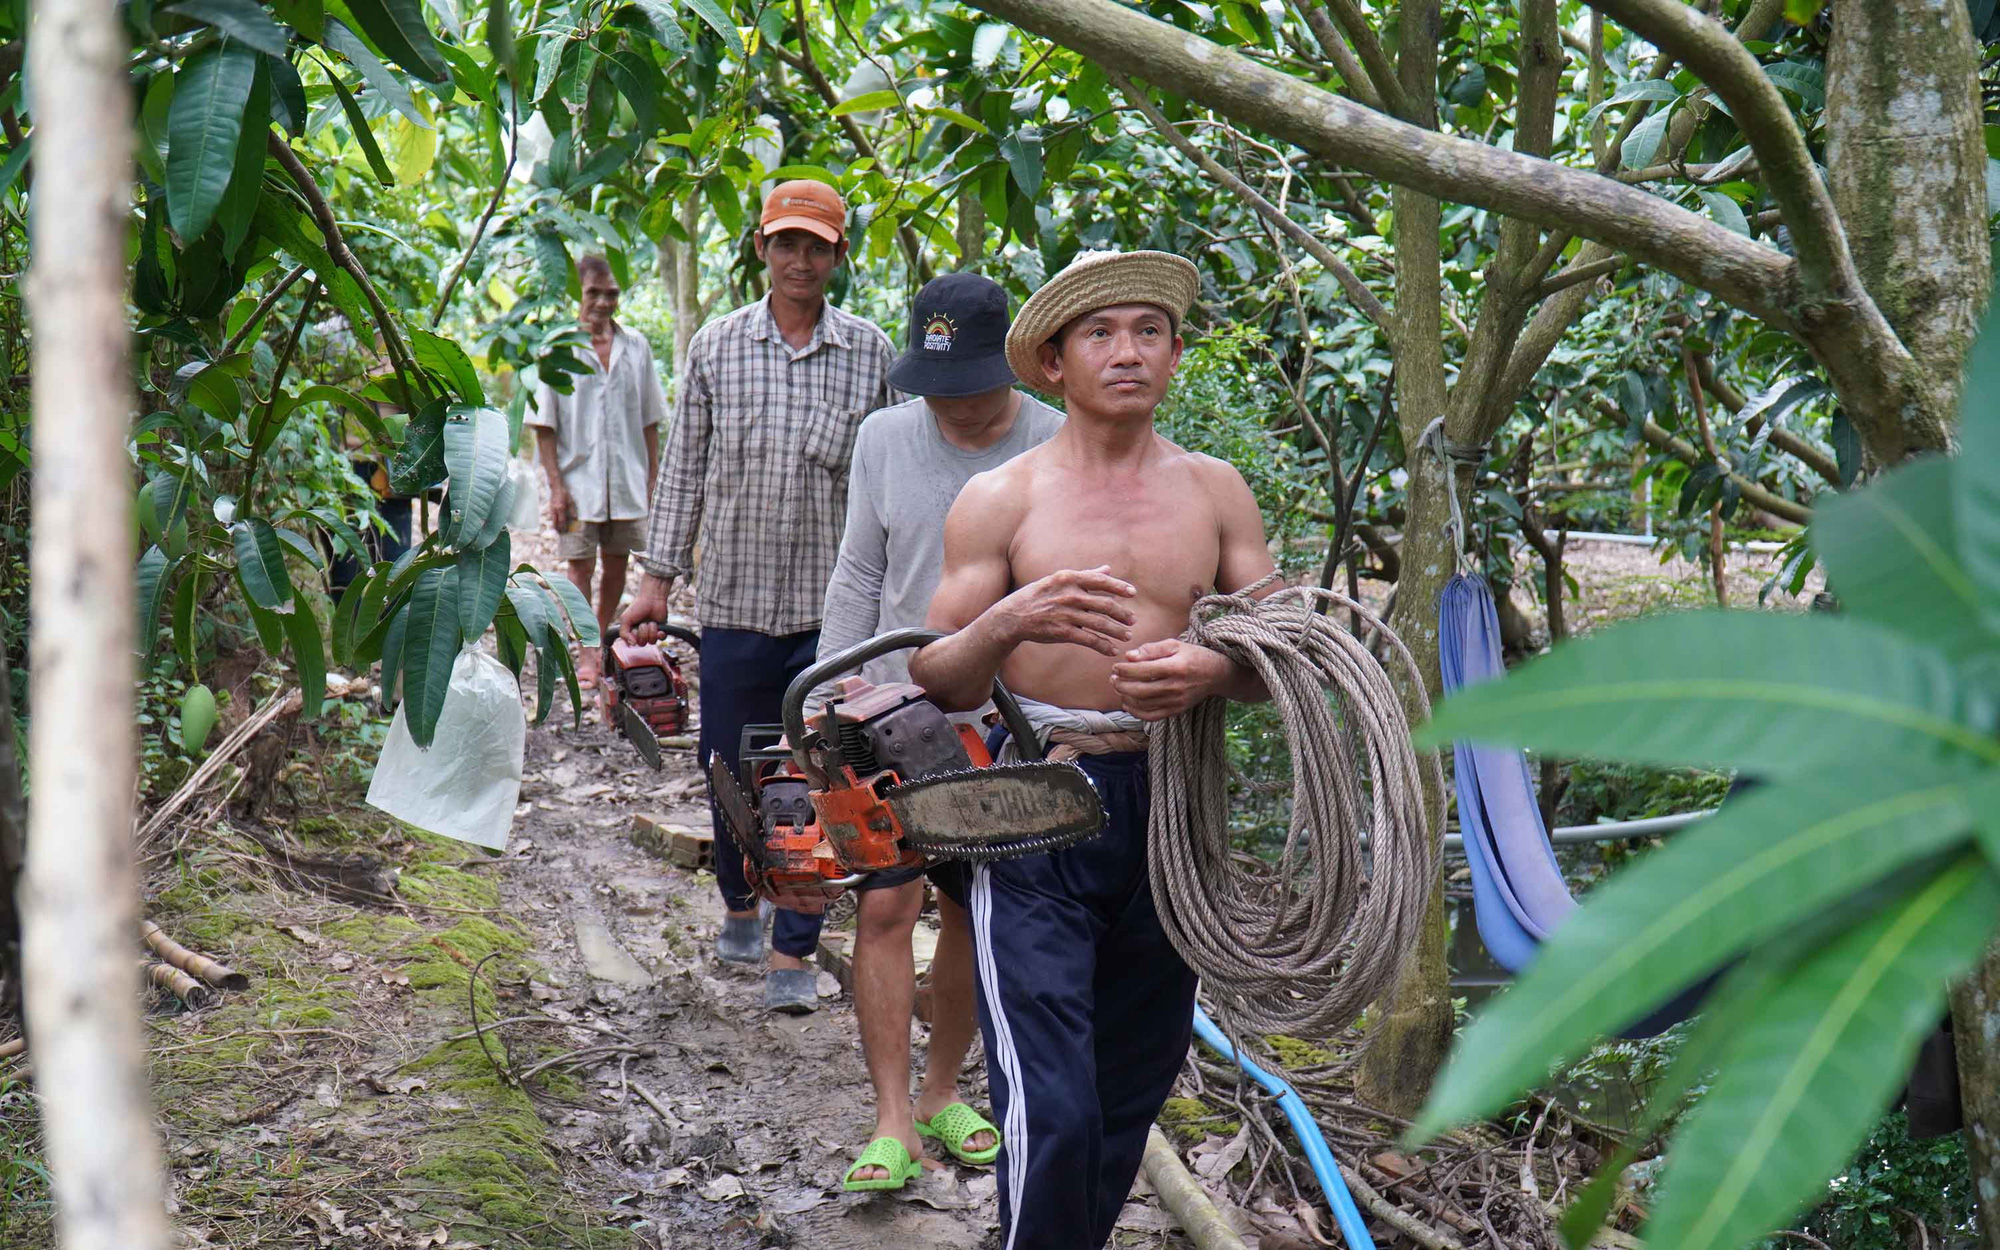 His team also includes two to three other trimmers. Photo: Mau Truong / Tuoi Tre